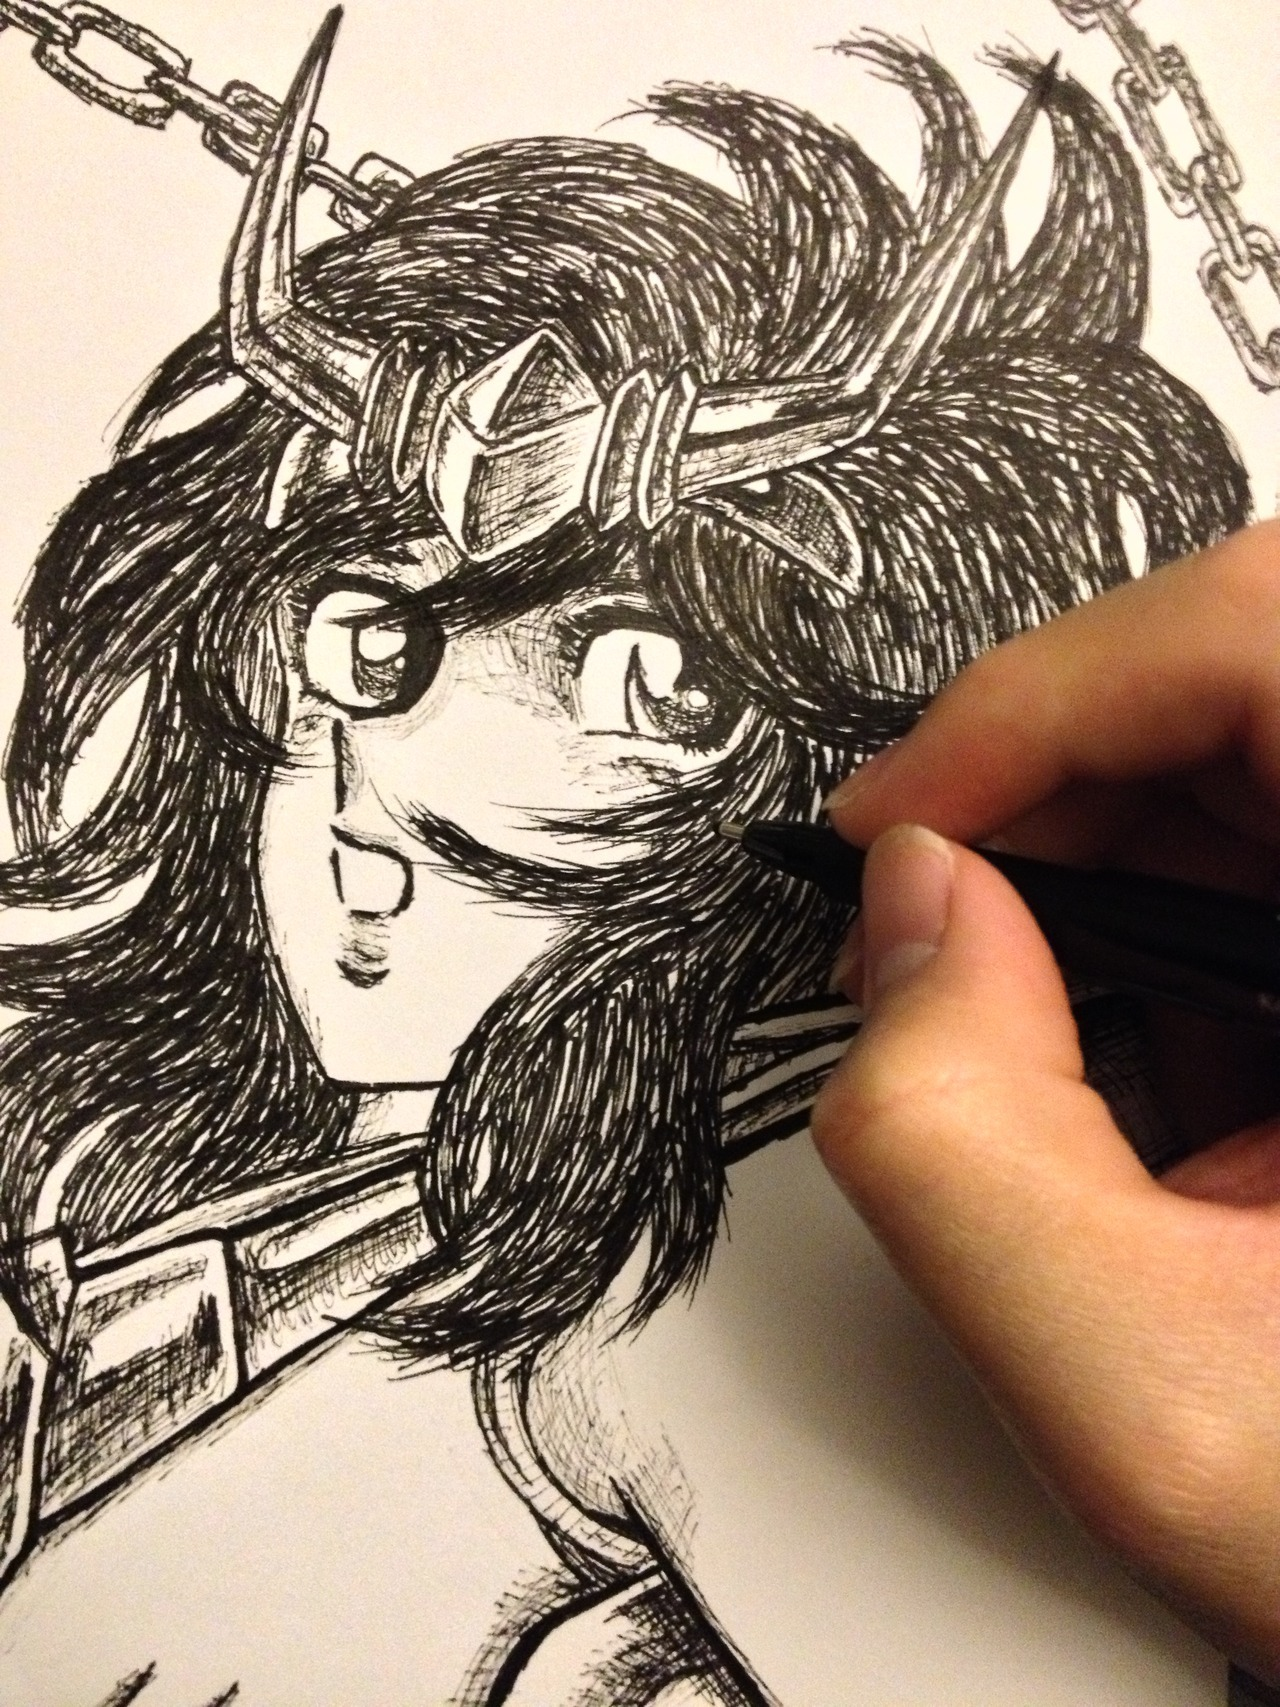 Sketching Andromeda Shun Here's one piece from my Saint Seiya portrait series. I have started to draw once a day…almost. It feels great to go back to basic. The textures and line quality produced by the ink pens are something that can't be achieved with a computer.